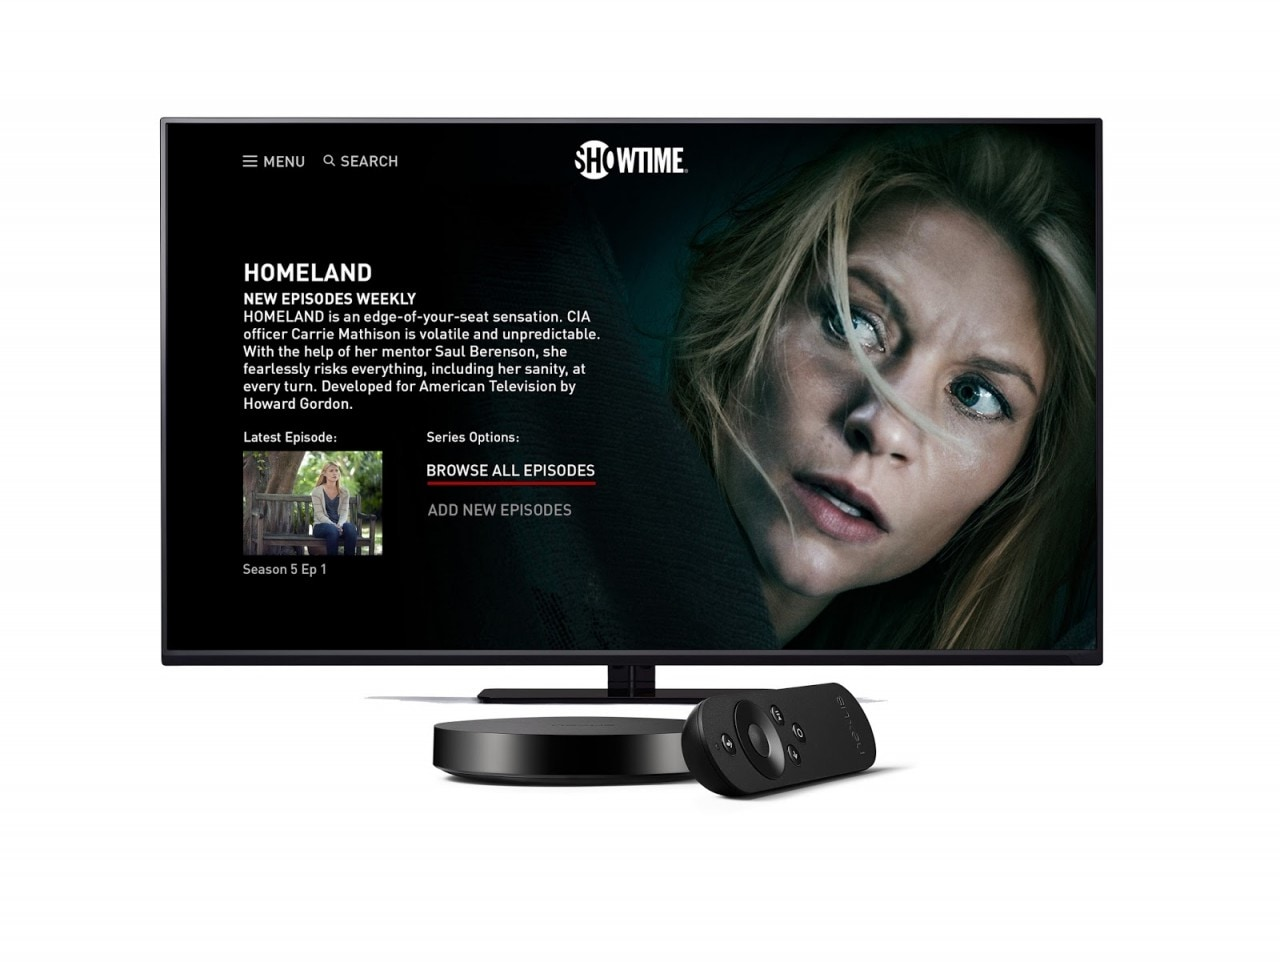 homeland android tv